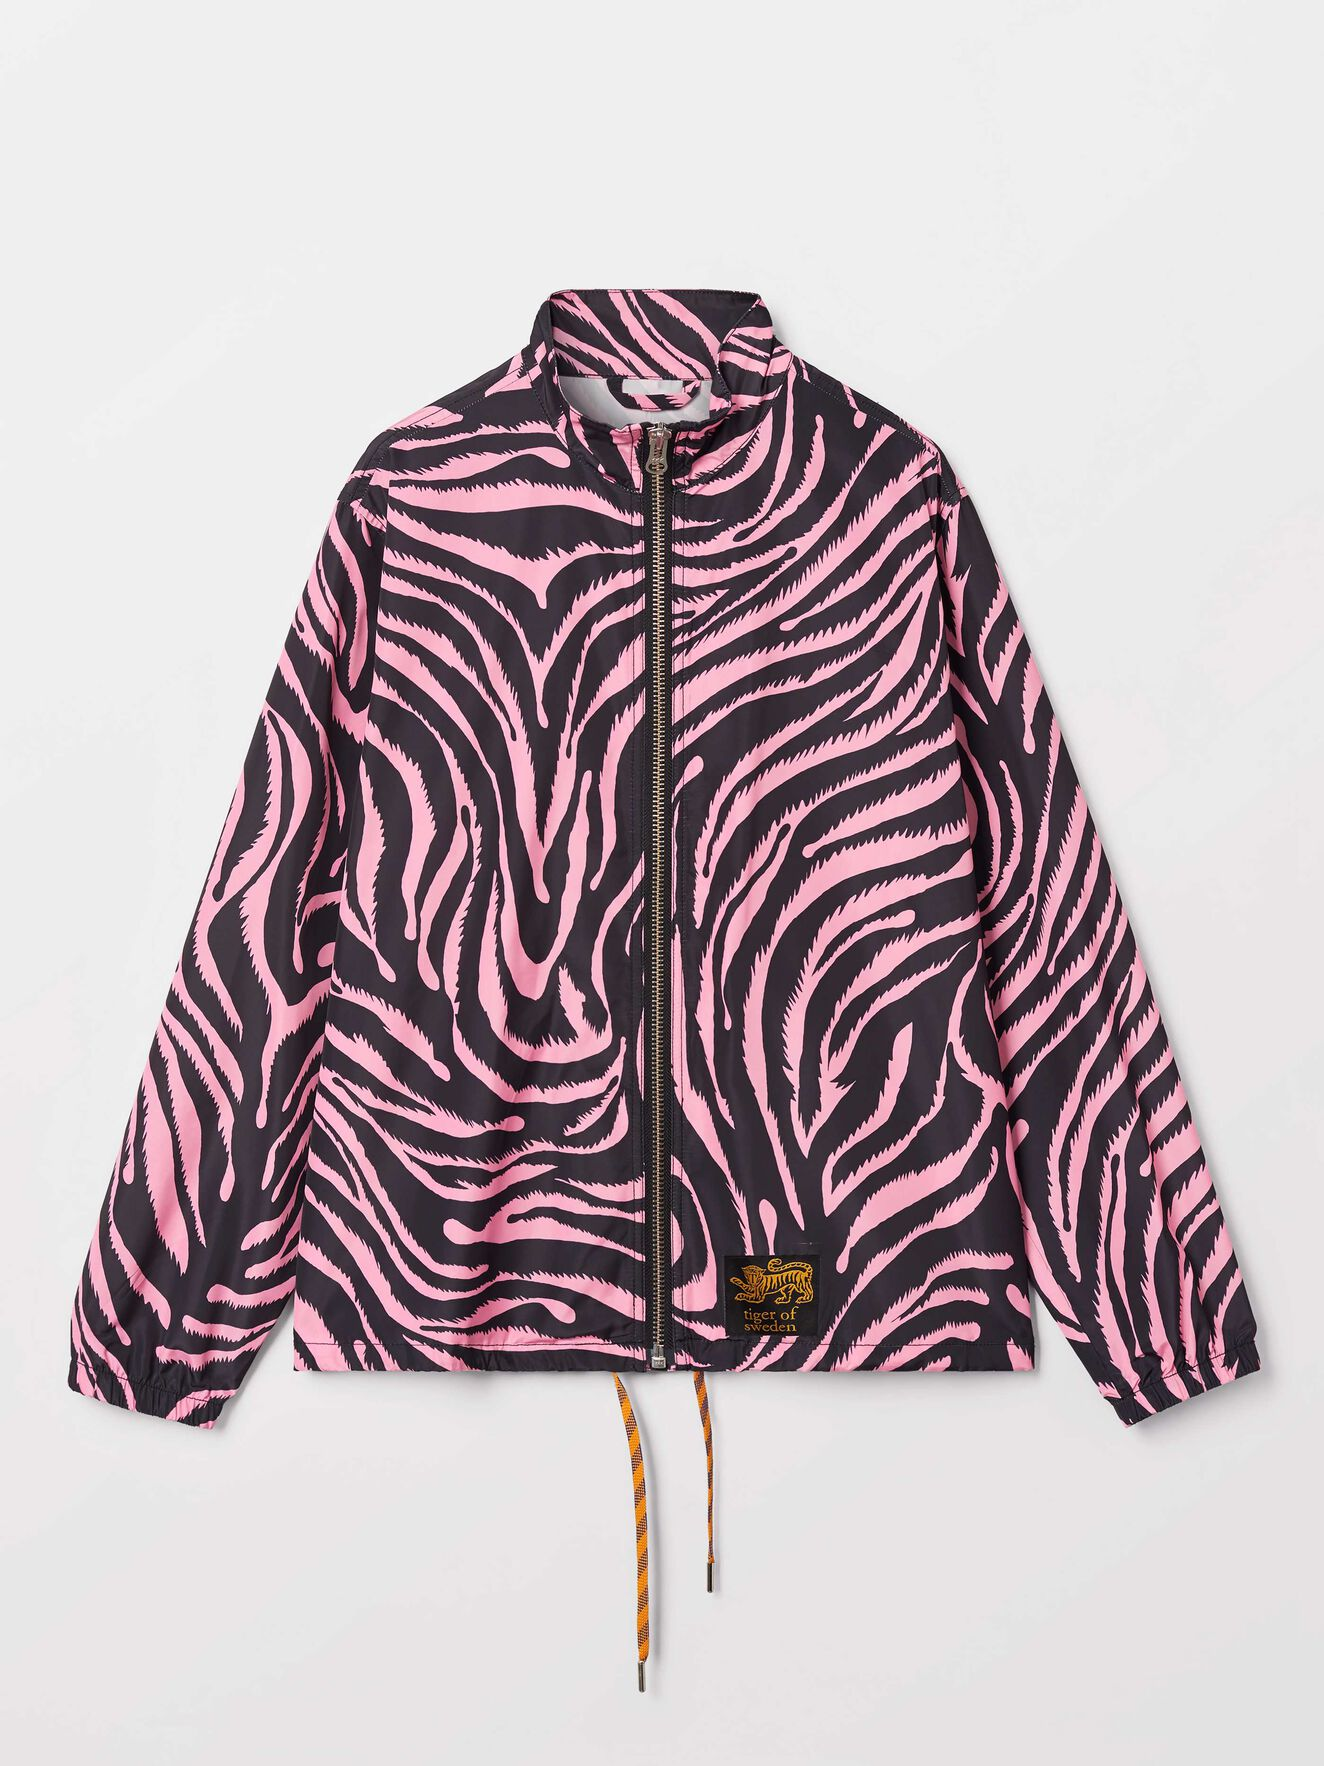 Rising Pr Jacket in Print from Tiger of Sweden